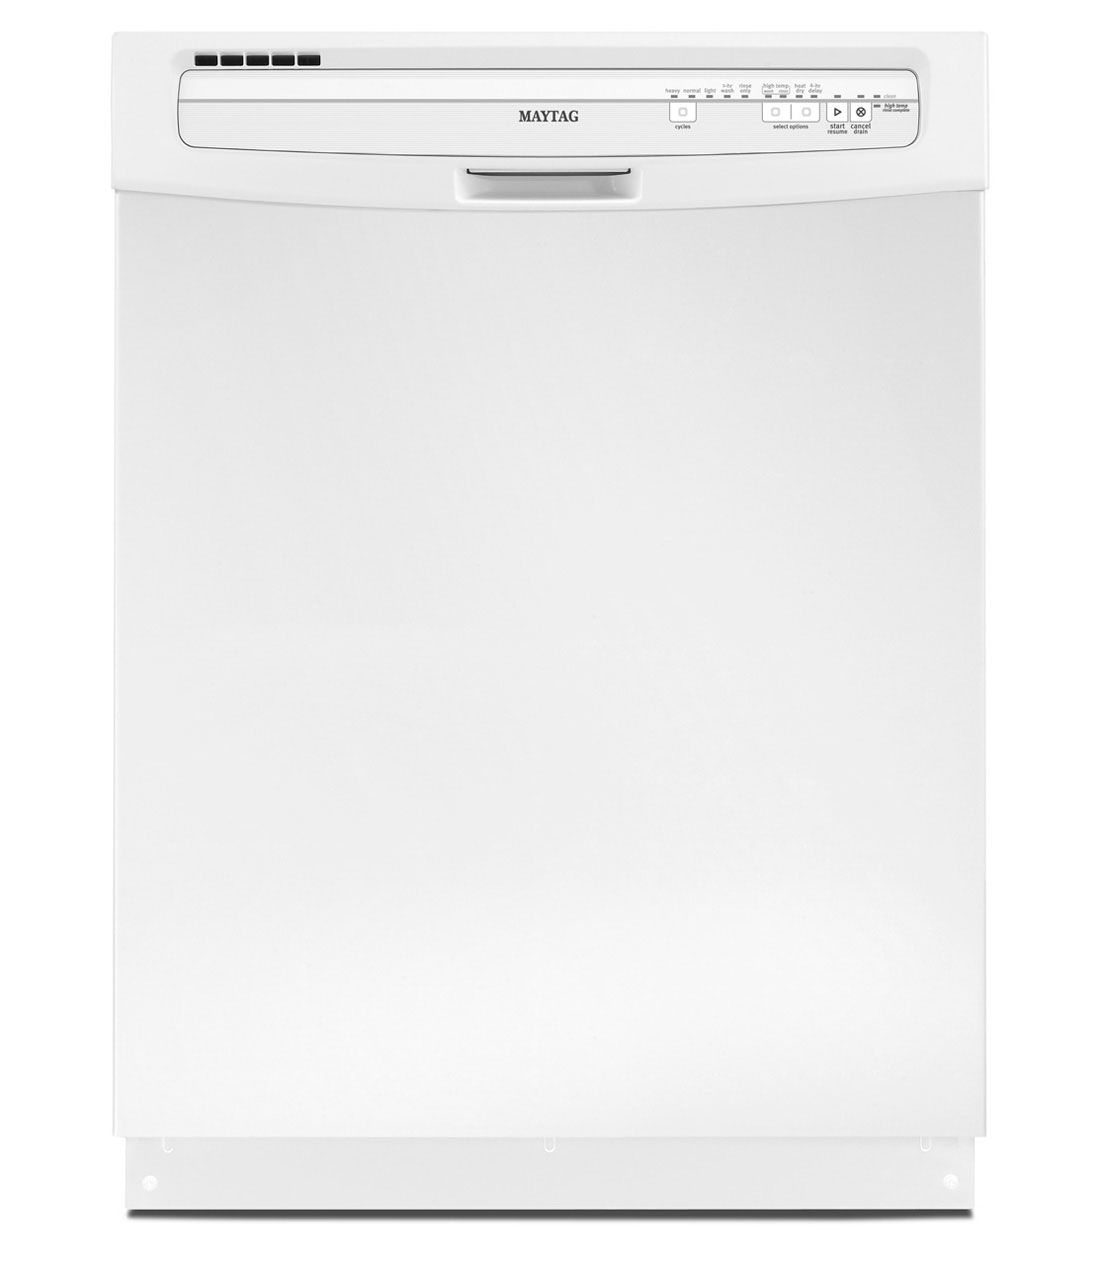 Maytag Jetclean Plus Dishwasher With High Temperature Wash Option Mdb4409paw Maytag Laundry Appliances Top Rated Dishwashers